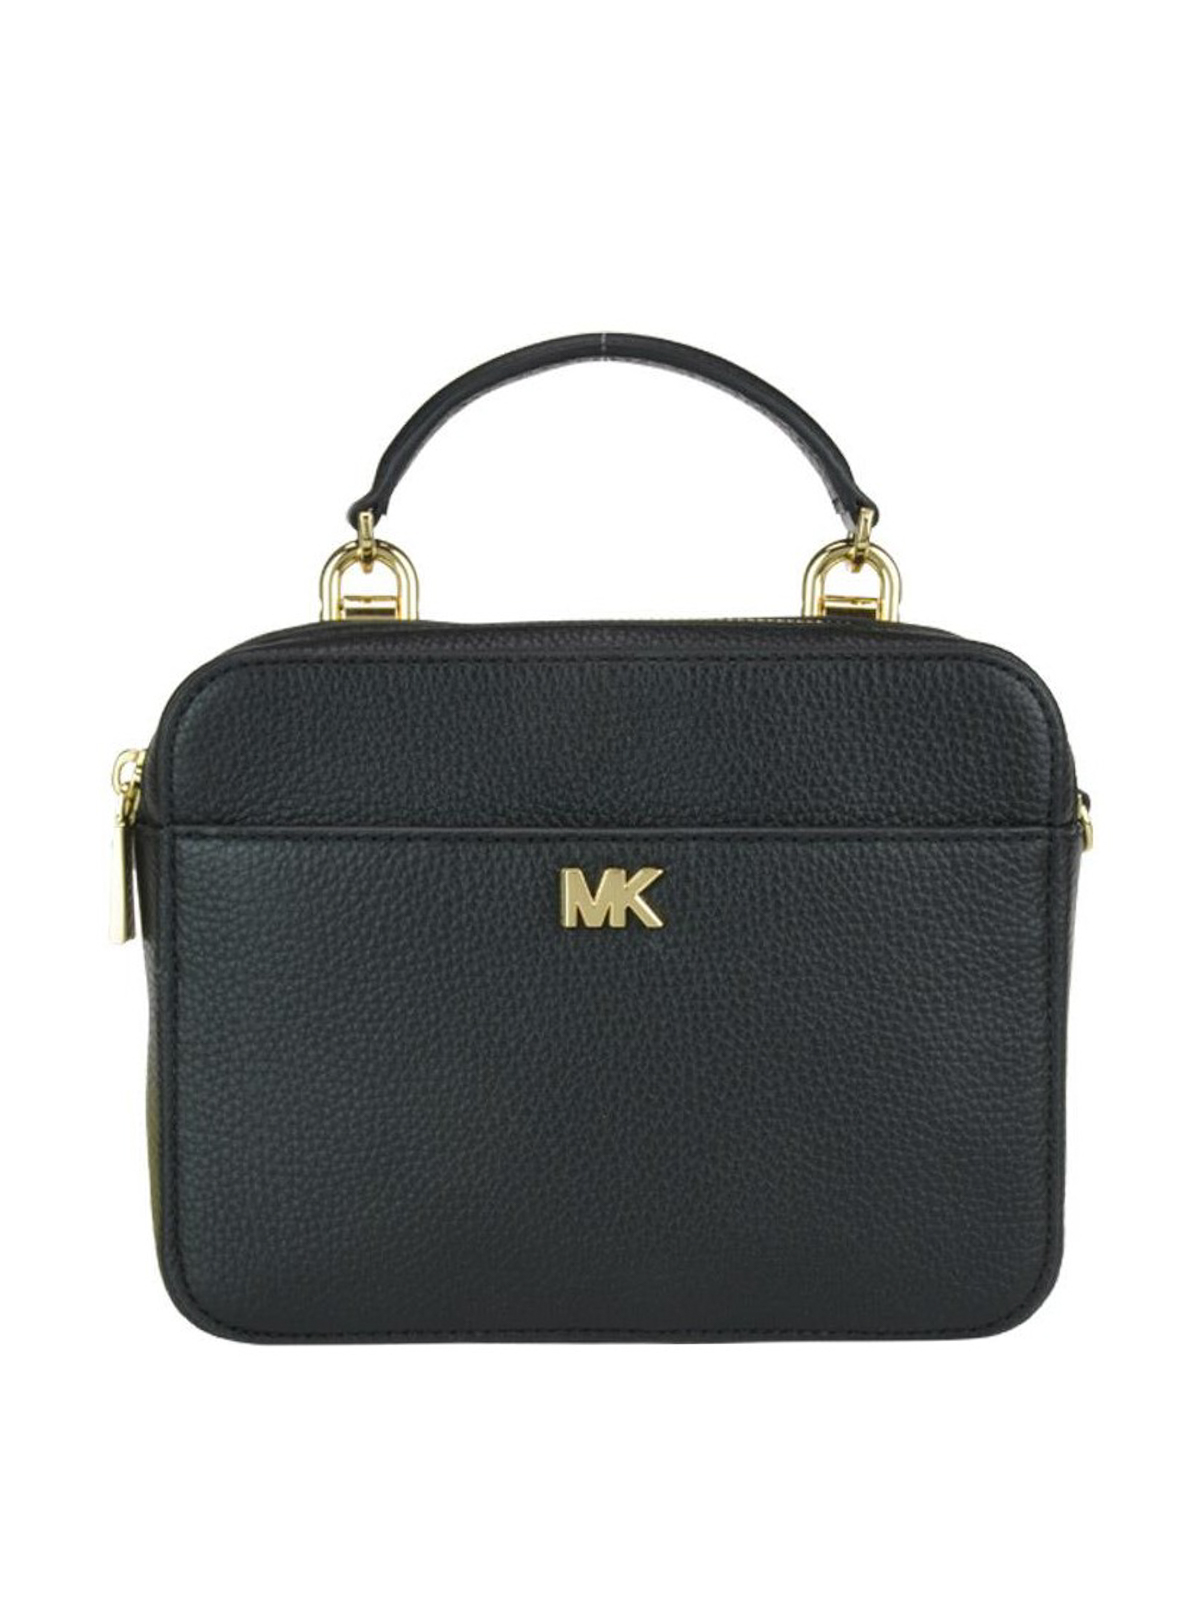 c0828dbc82eb MICHAEL KORS  cross body bags - Black grained leather briefcase style bag